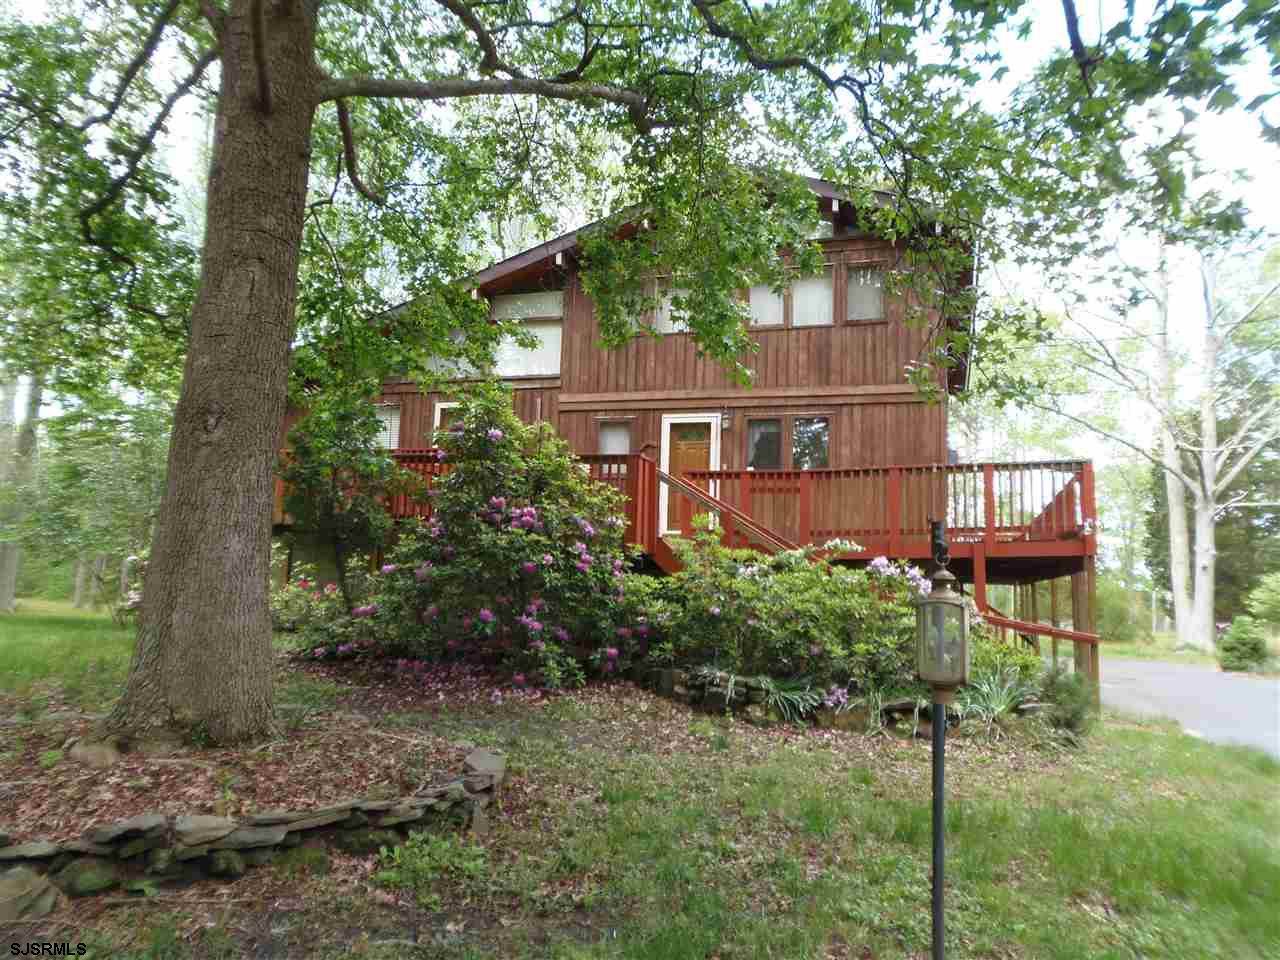 343 N New York Road, Galloway Township, NJ 08205